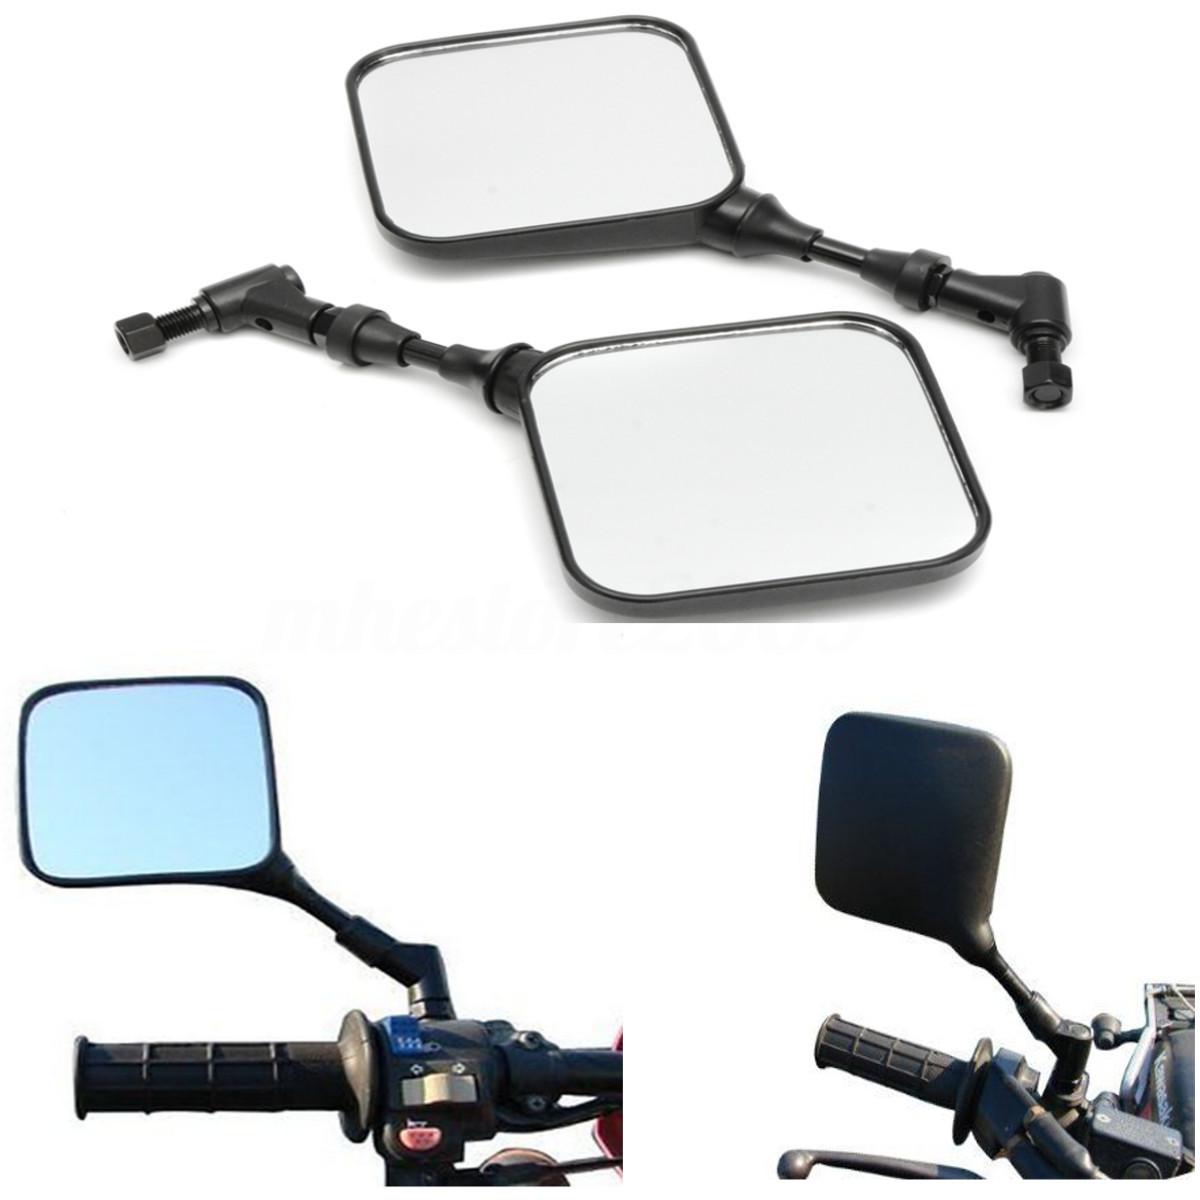 Black Motorcycle Rear View Mirrors For Suzuki <font><b>DR</b></font> <font><b>200</b></font> 250 DR350 DRZ 400 650 DR650 image